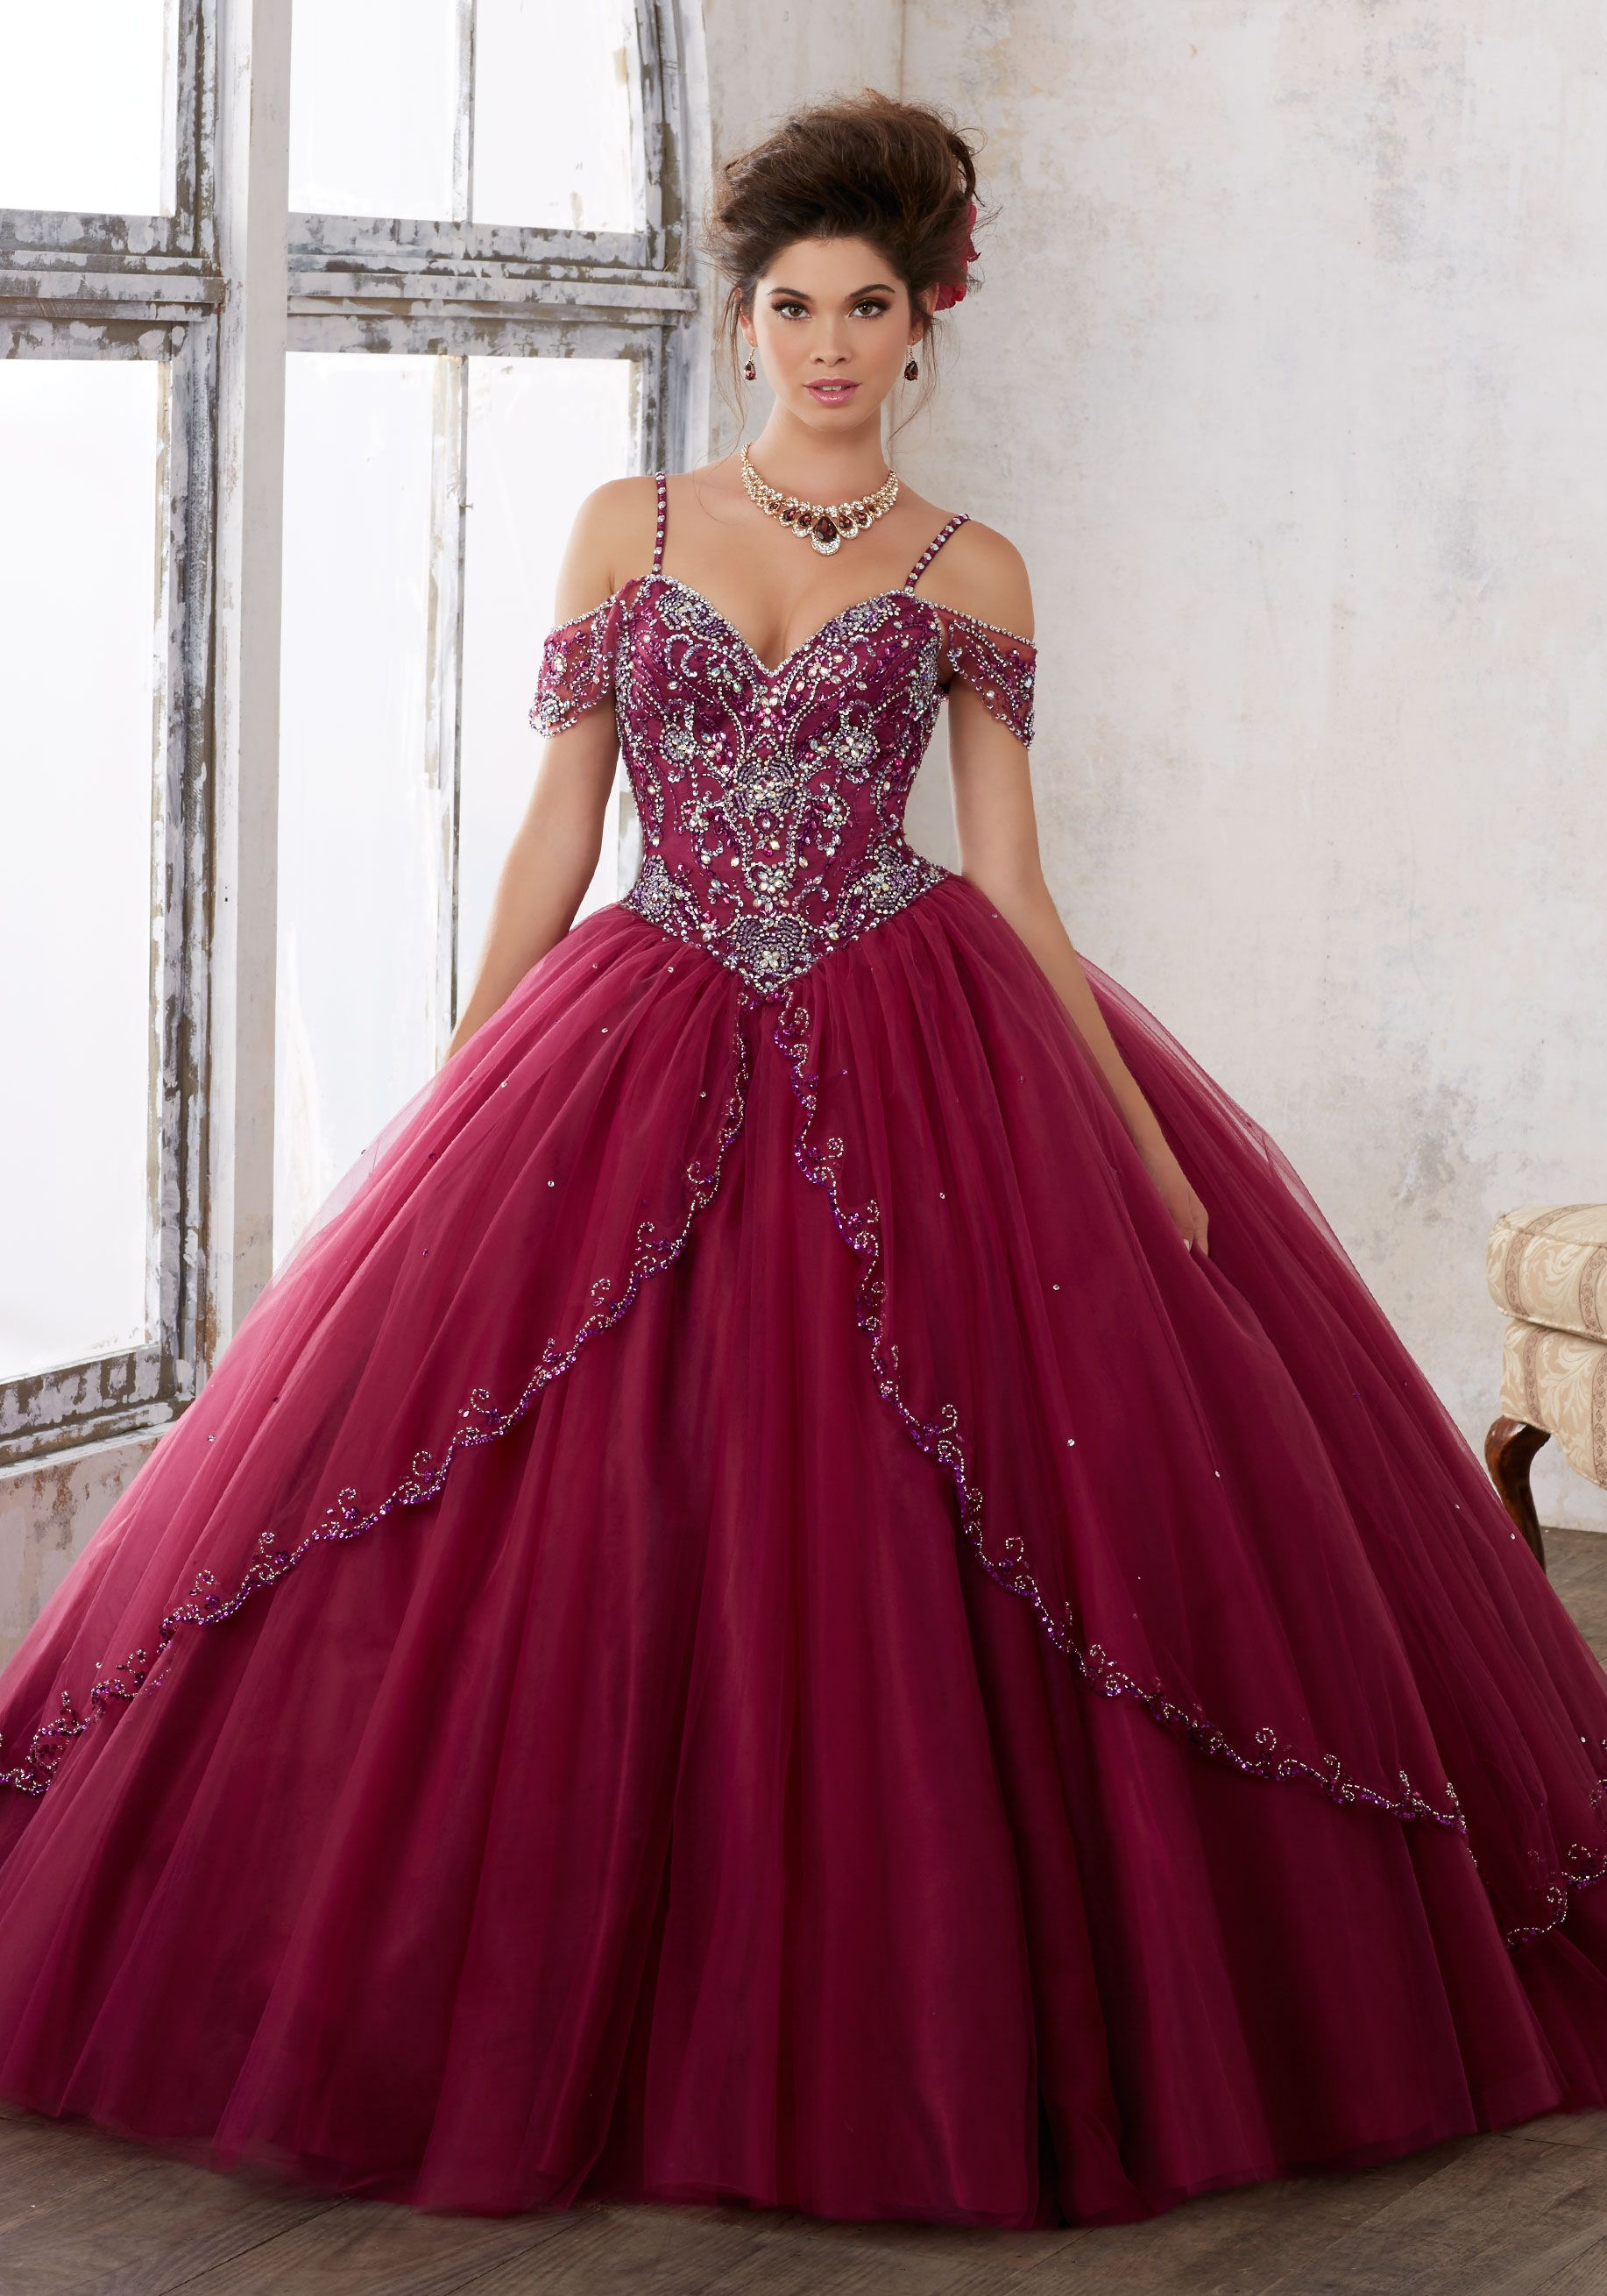 20 New Off-the-shoulder Quinceanera Dresses | Schöne kleider ...